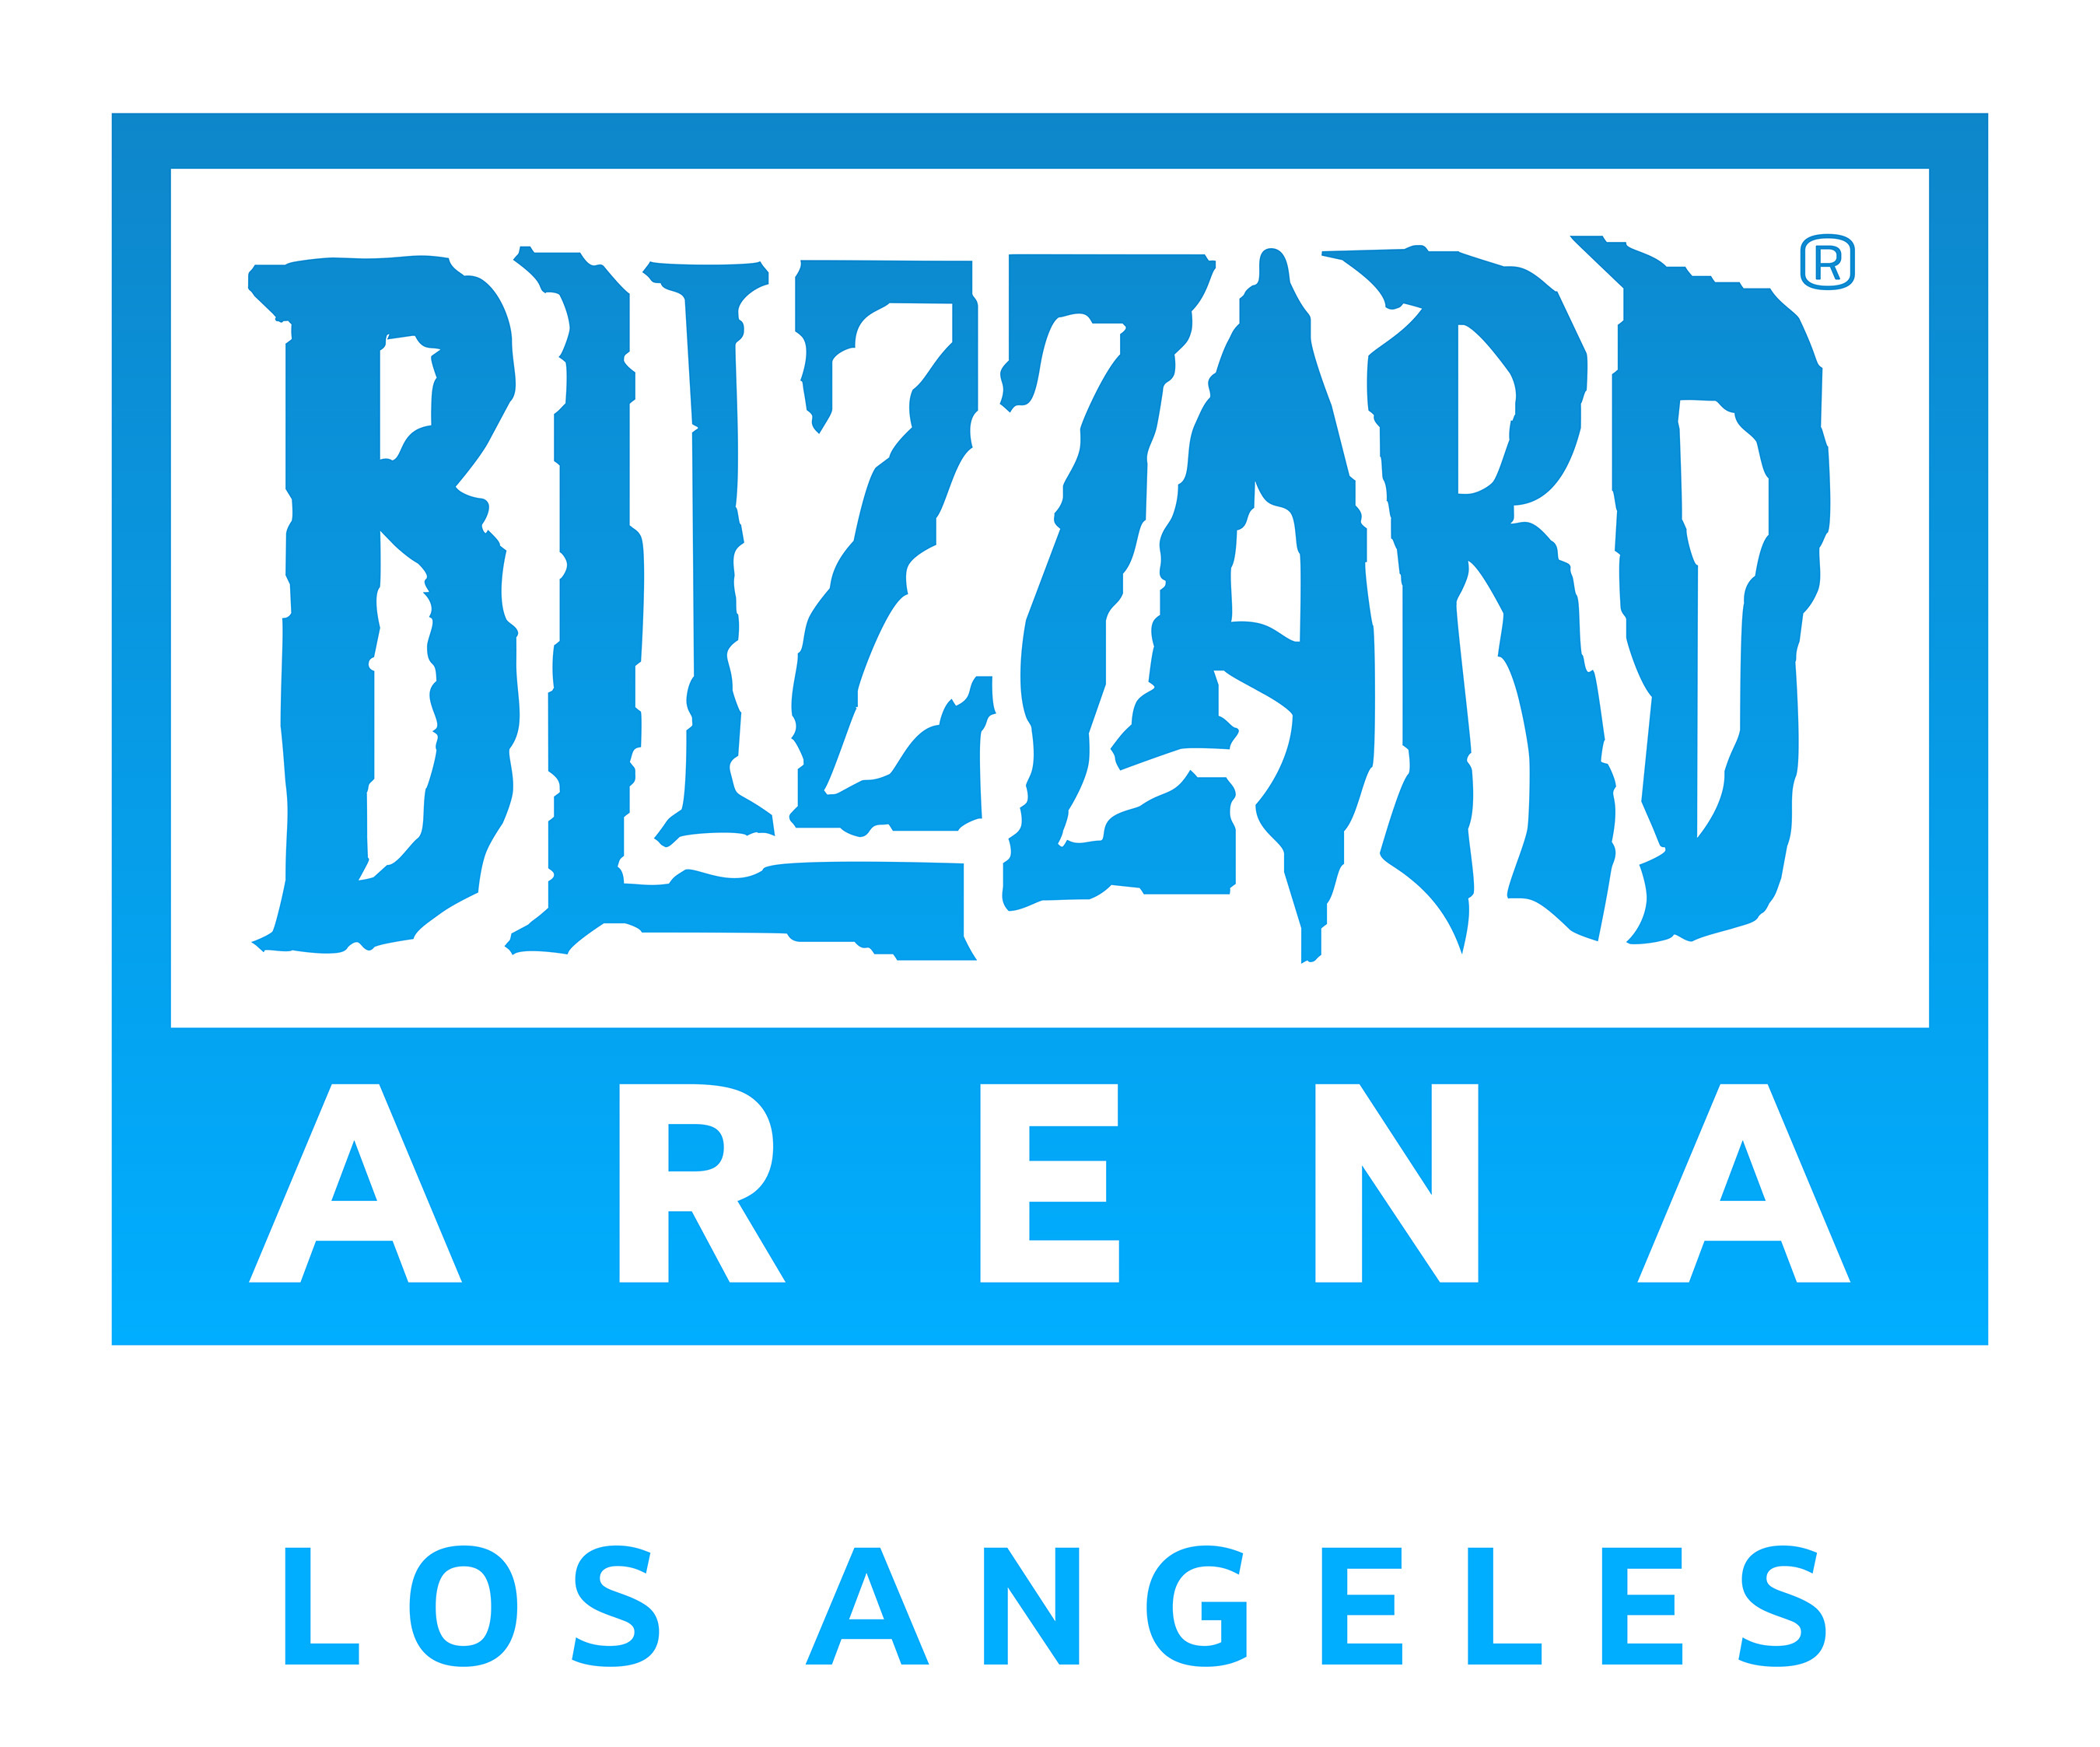 Blizzard Entertainment Establishes State Of The Art Live Event